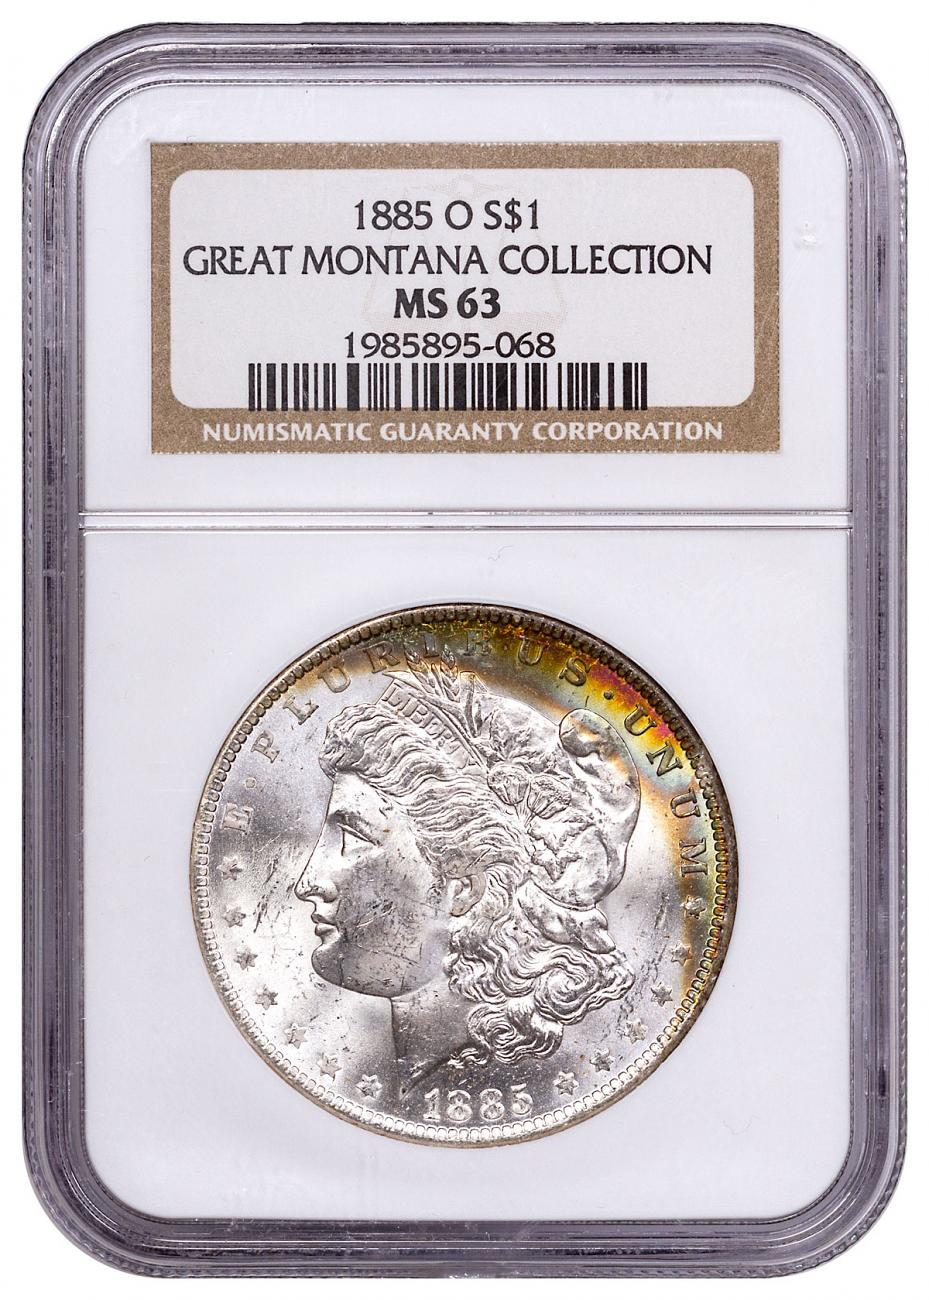 1885-O Morgan Silver Dollar From the Great Montana Collection NGC MS63 Toned CPCR 5068